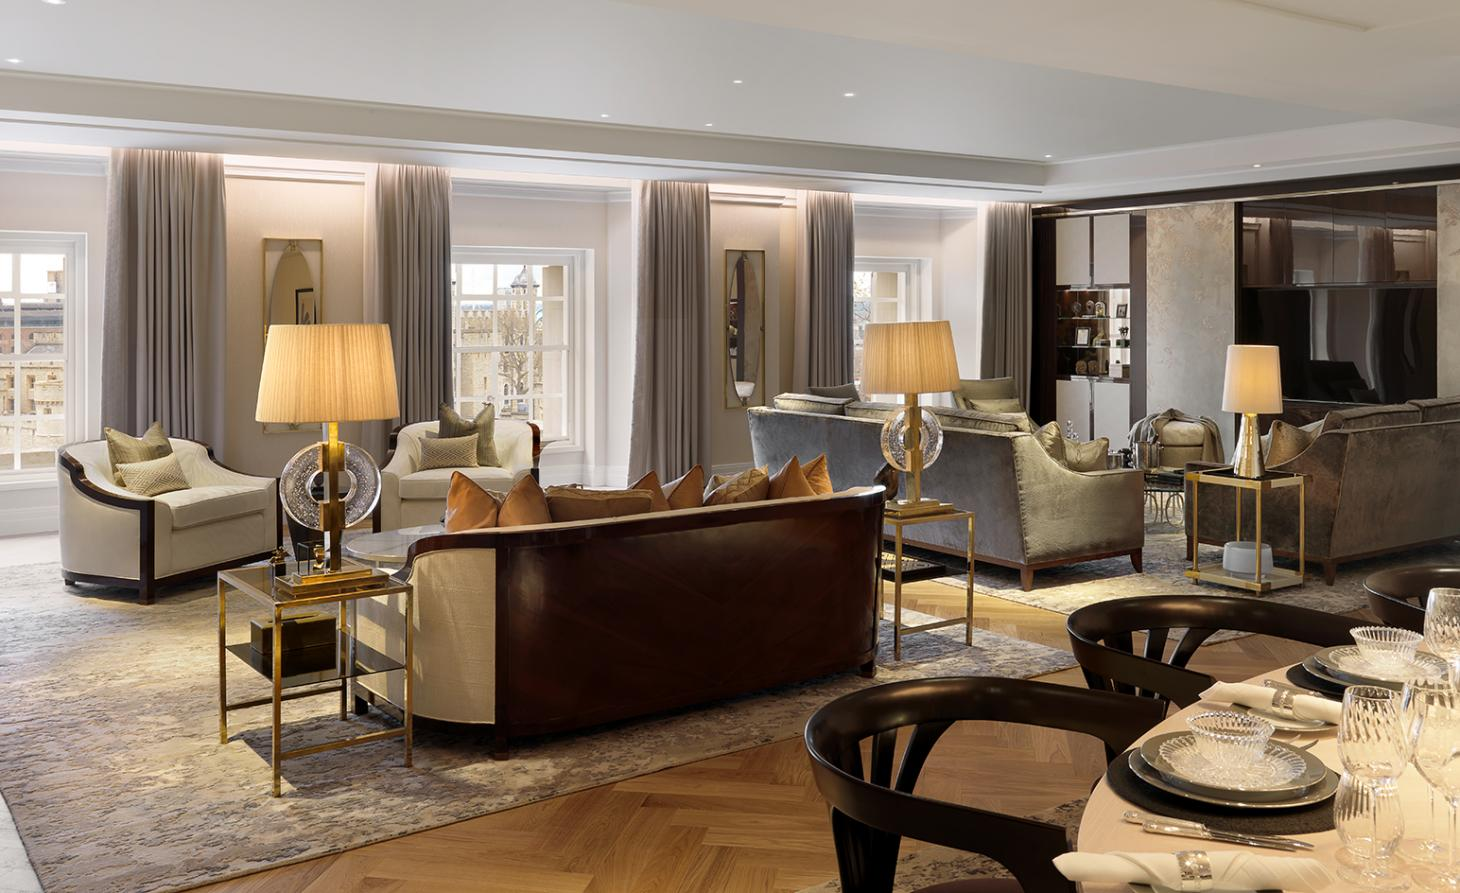 A piece of history: London's Ten Trinity Square residential interiors revealed